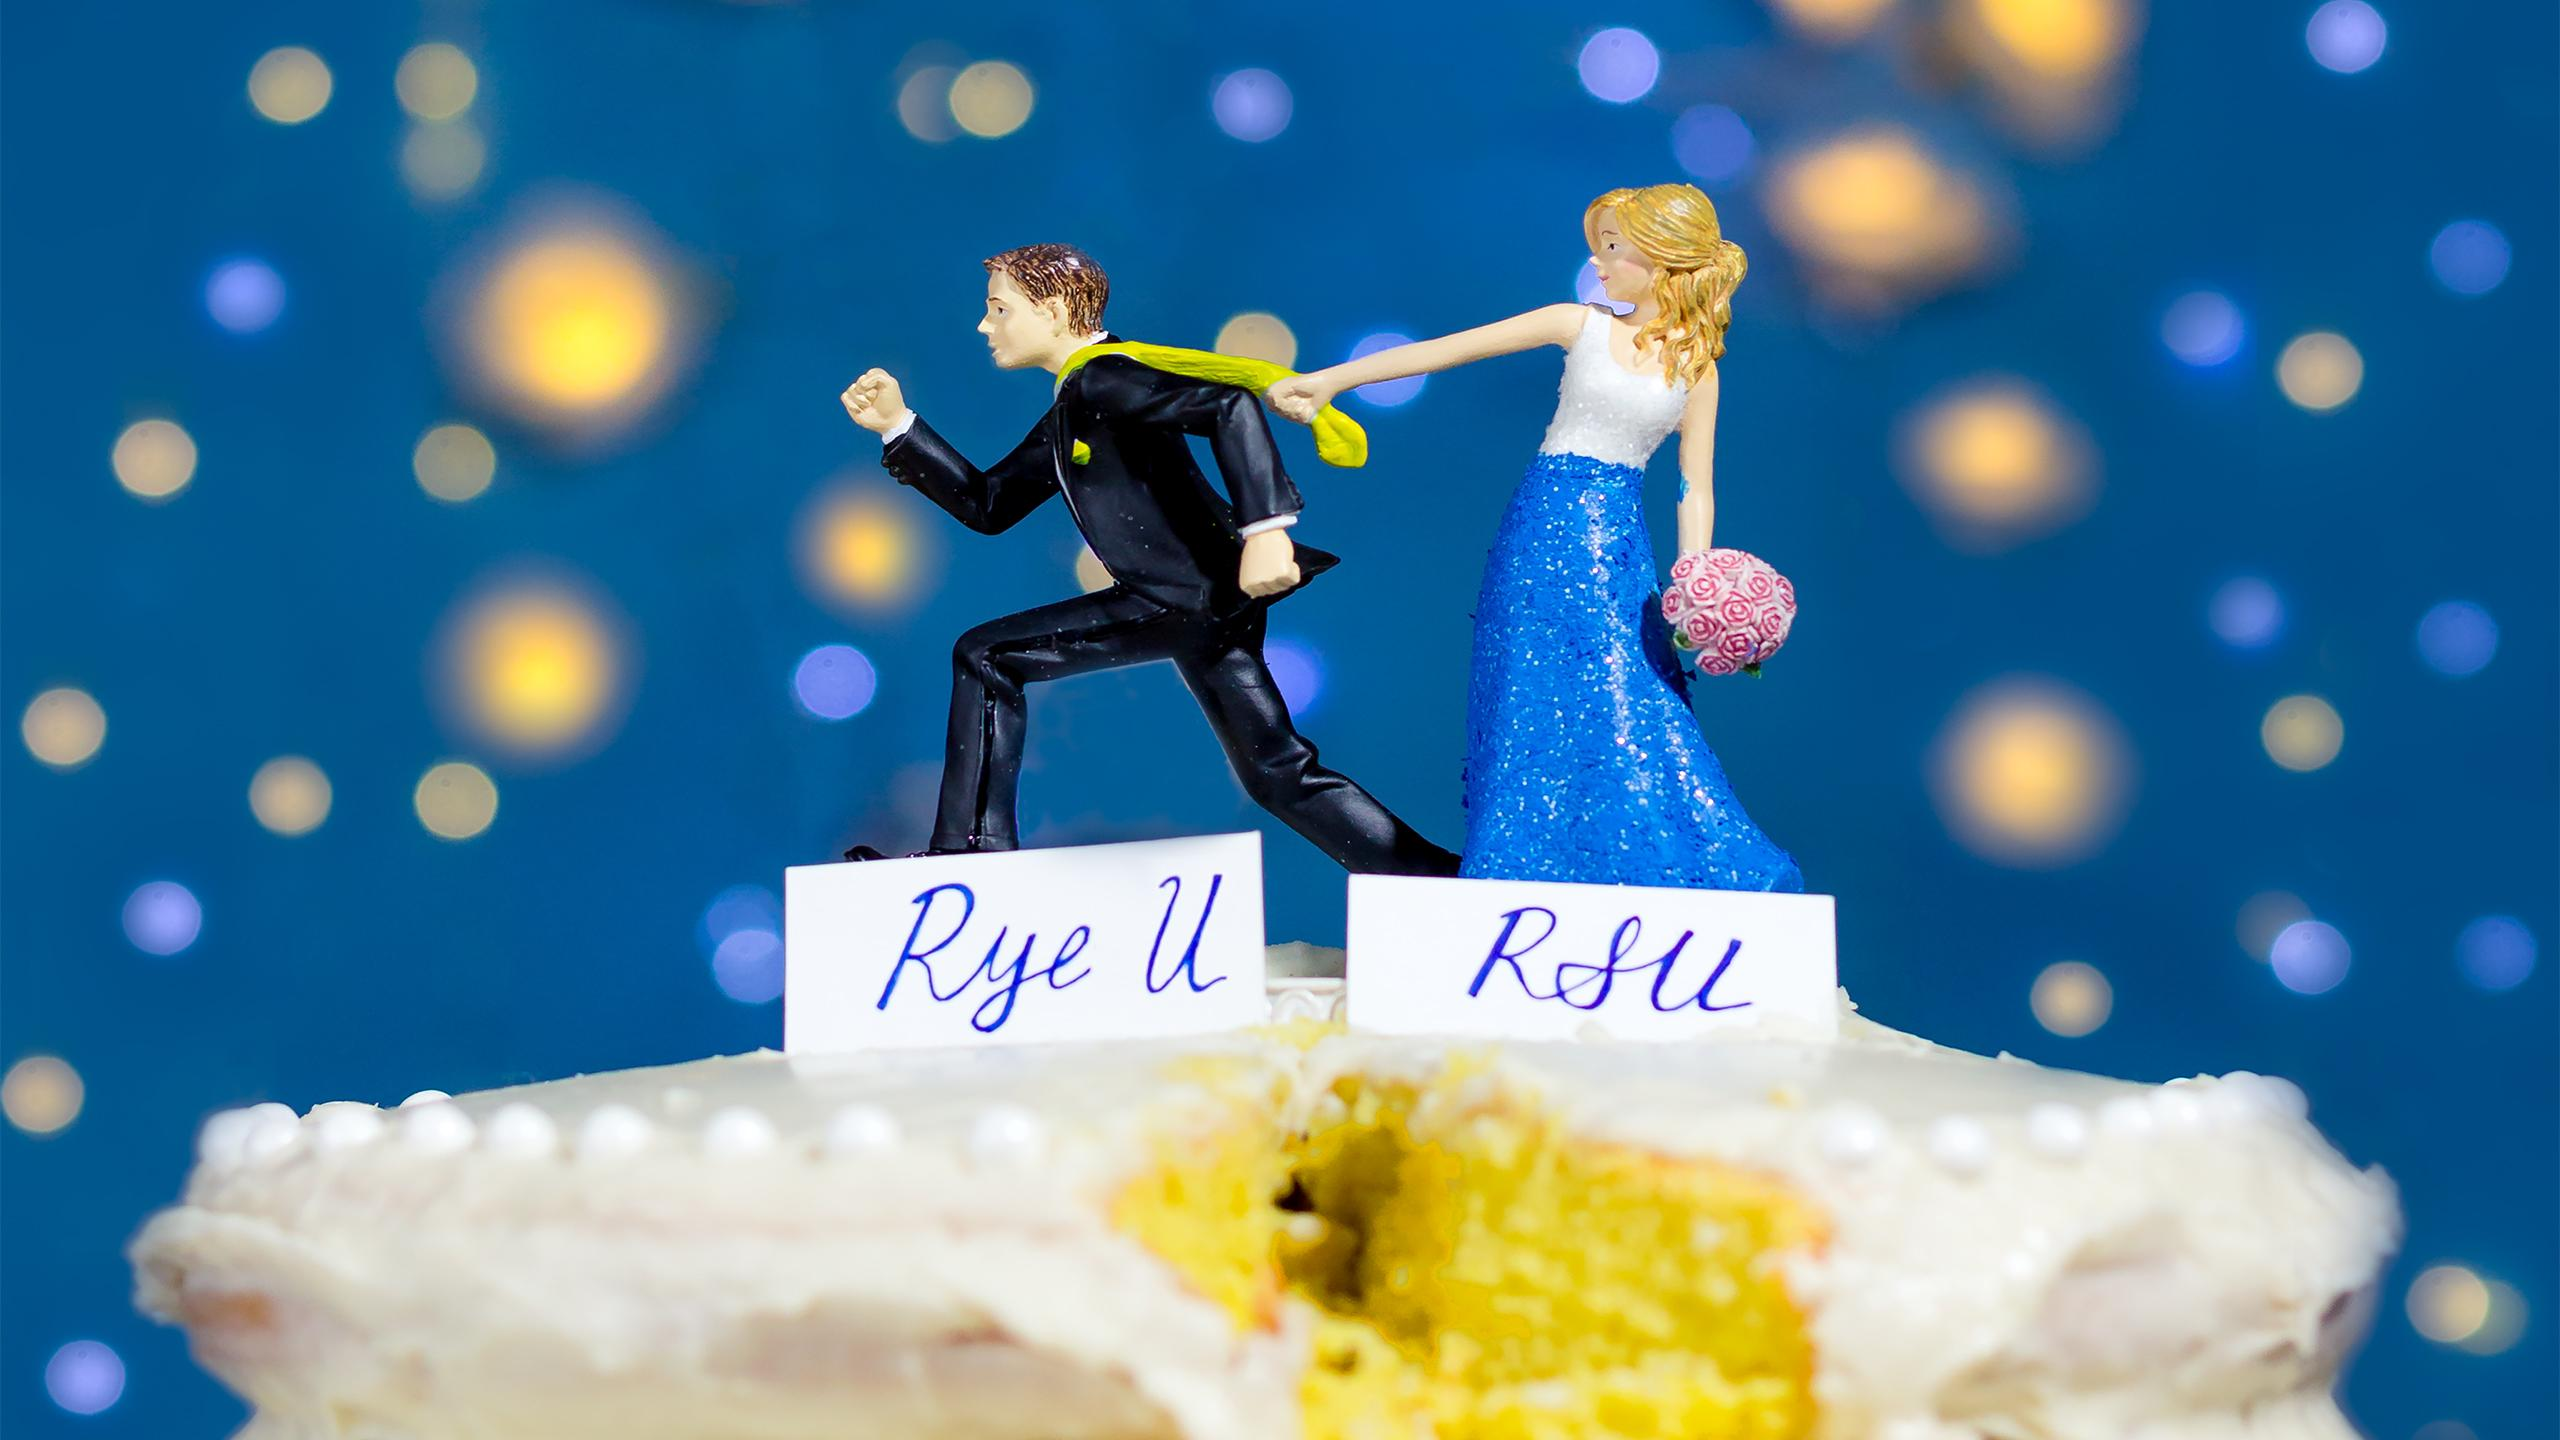 Wedding cake toppers showing a bride holding onto her groom's tie as he tries to run away. A nameplate under the bride says RSU and under the groom says Rye U.